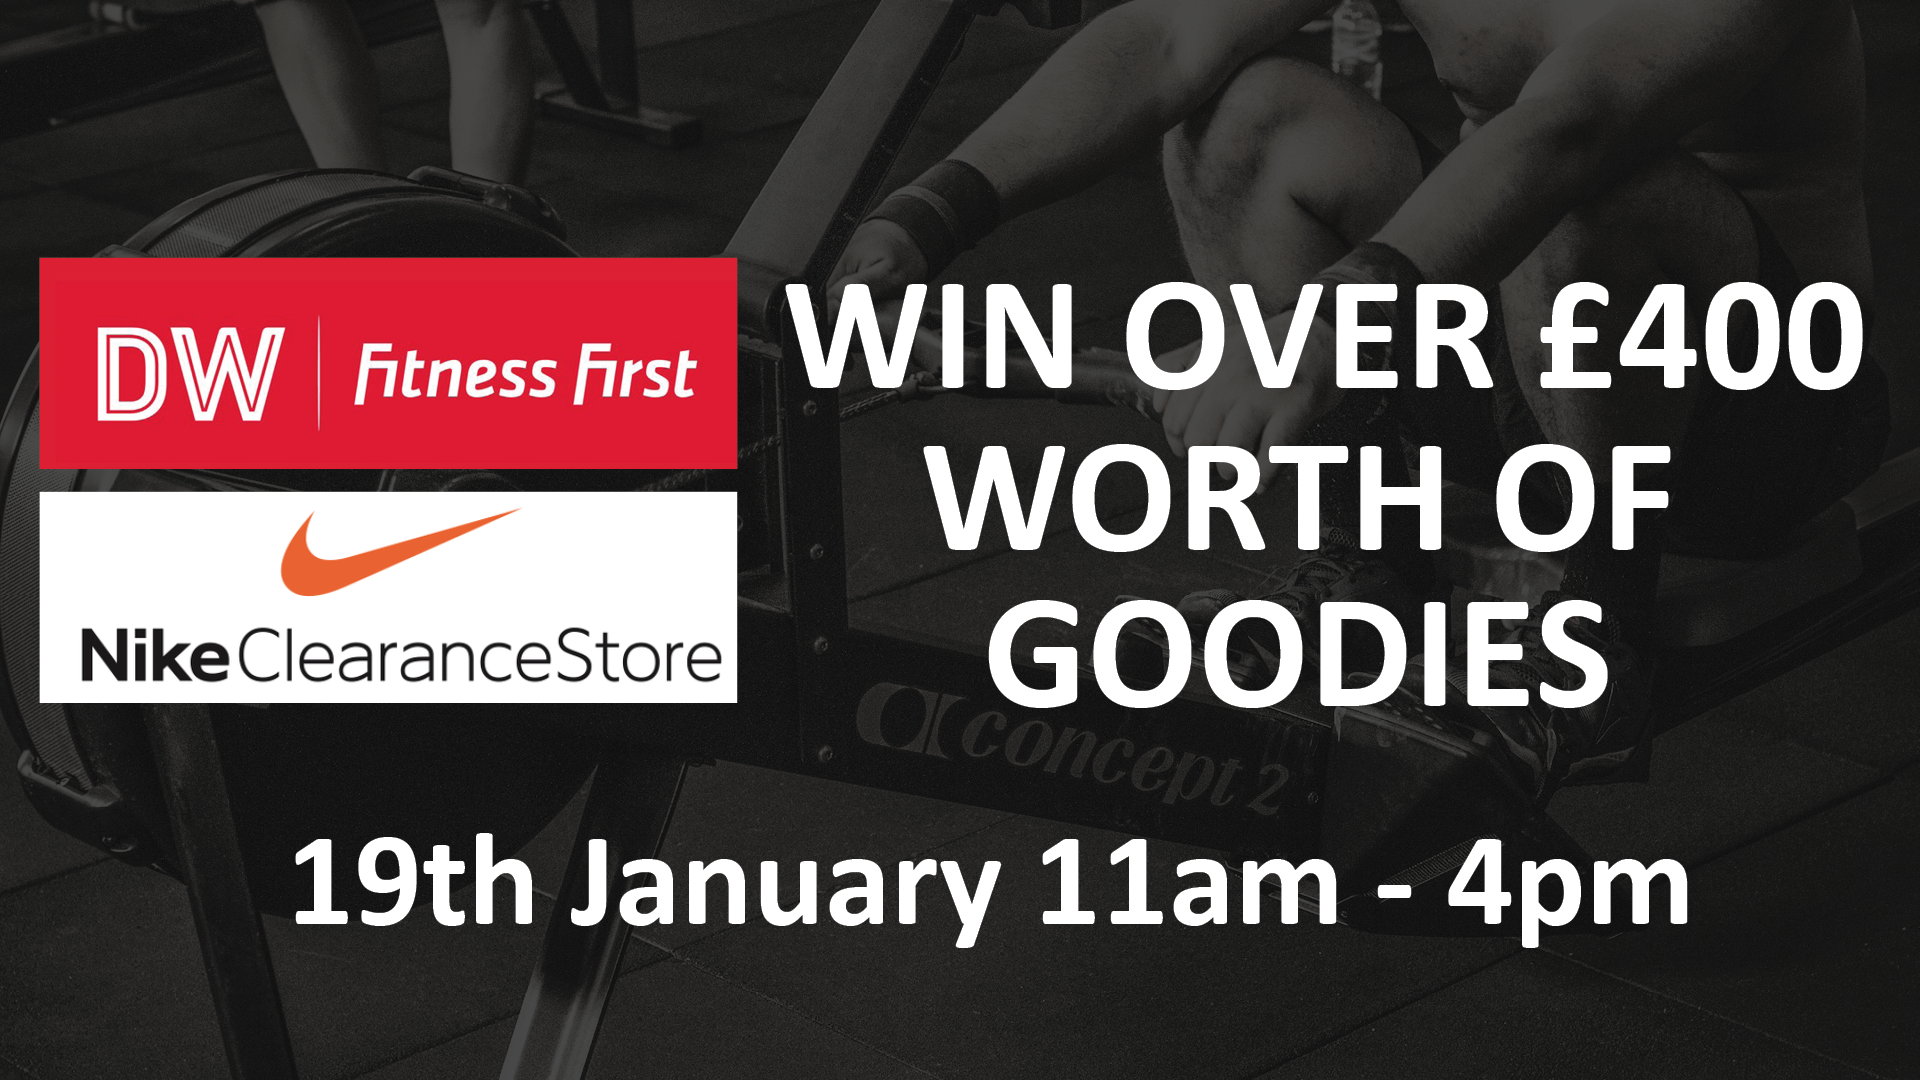 Win over 400 worth of goodies at Nike Clearance Affinity Staffordshire